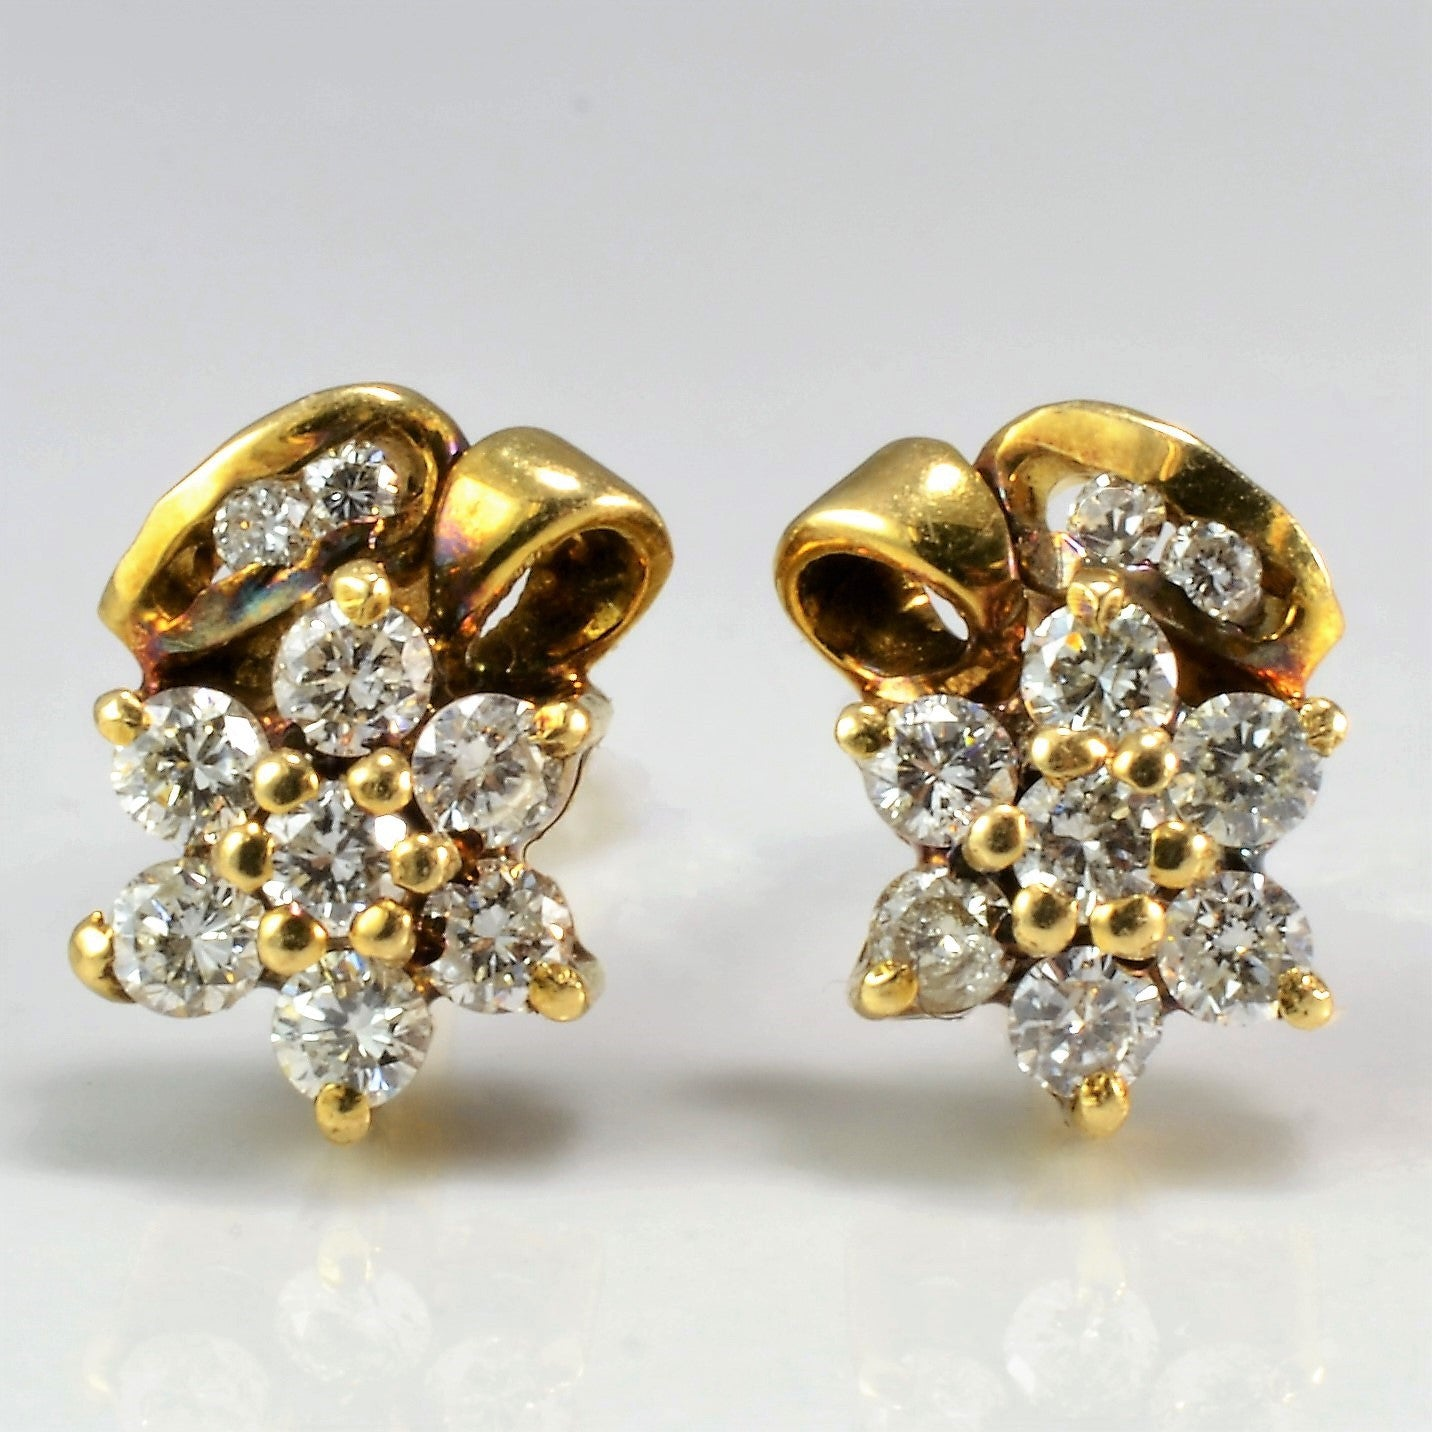 Beautiful Flower Design Diamond Stud Earrings | 0.32 ctw |